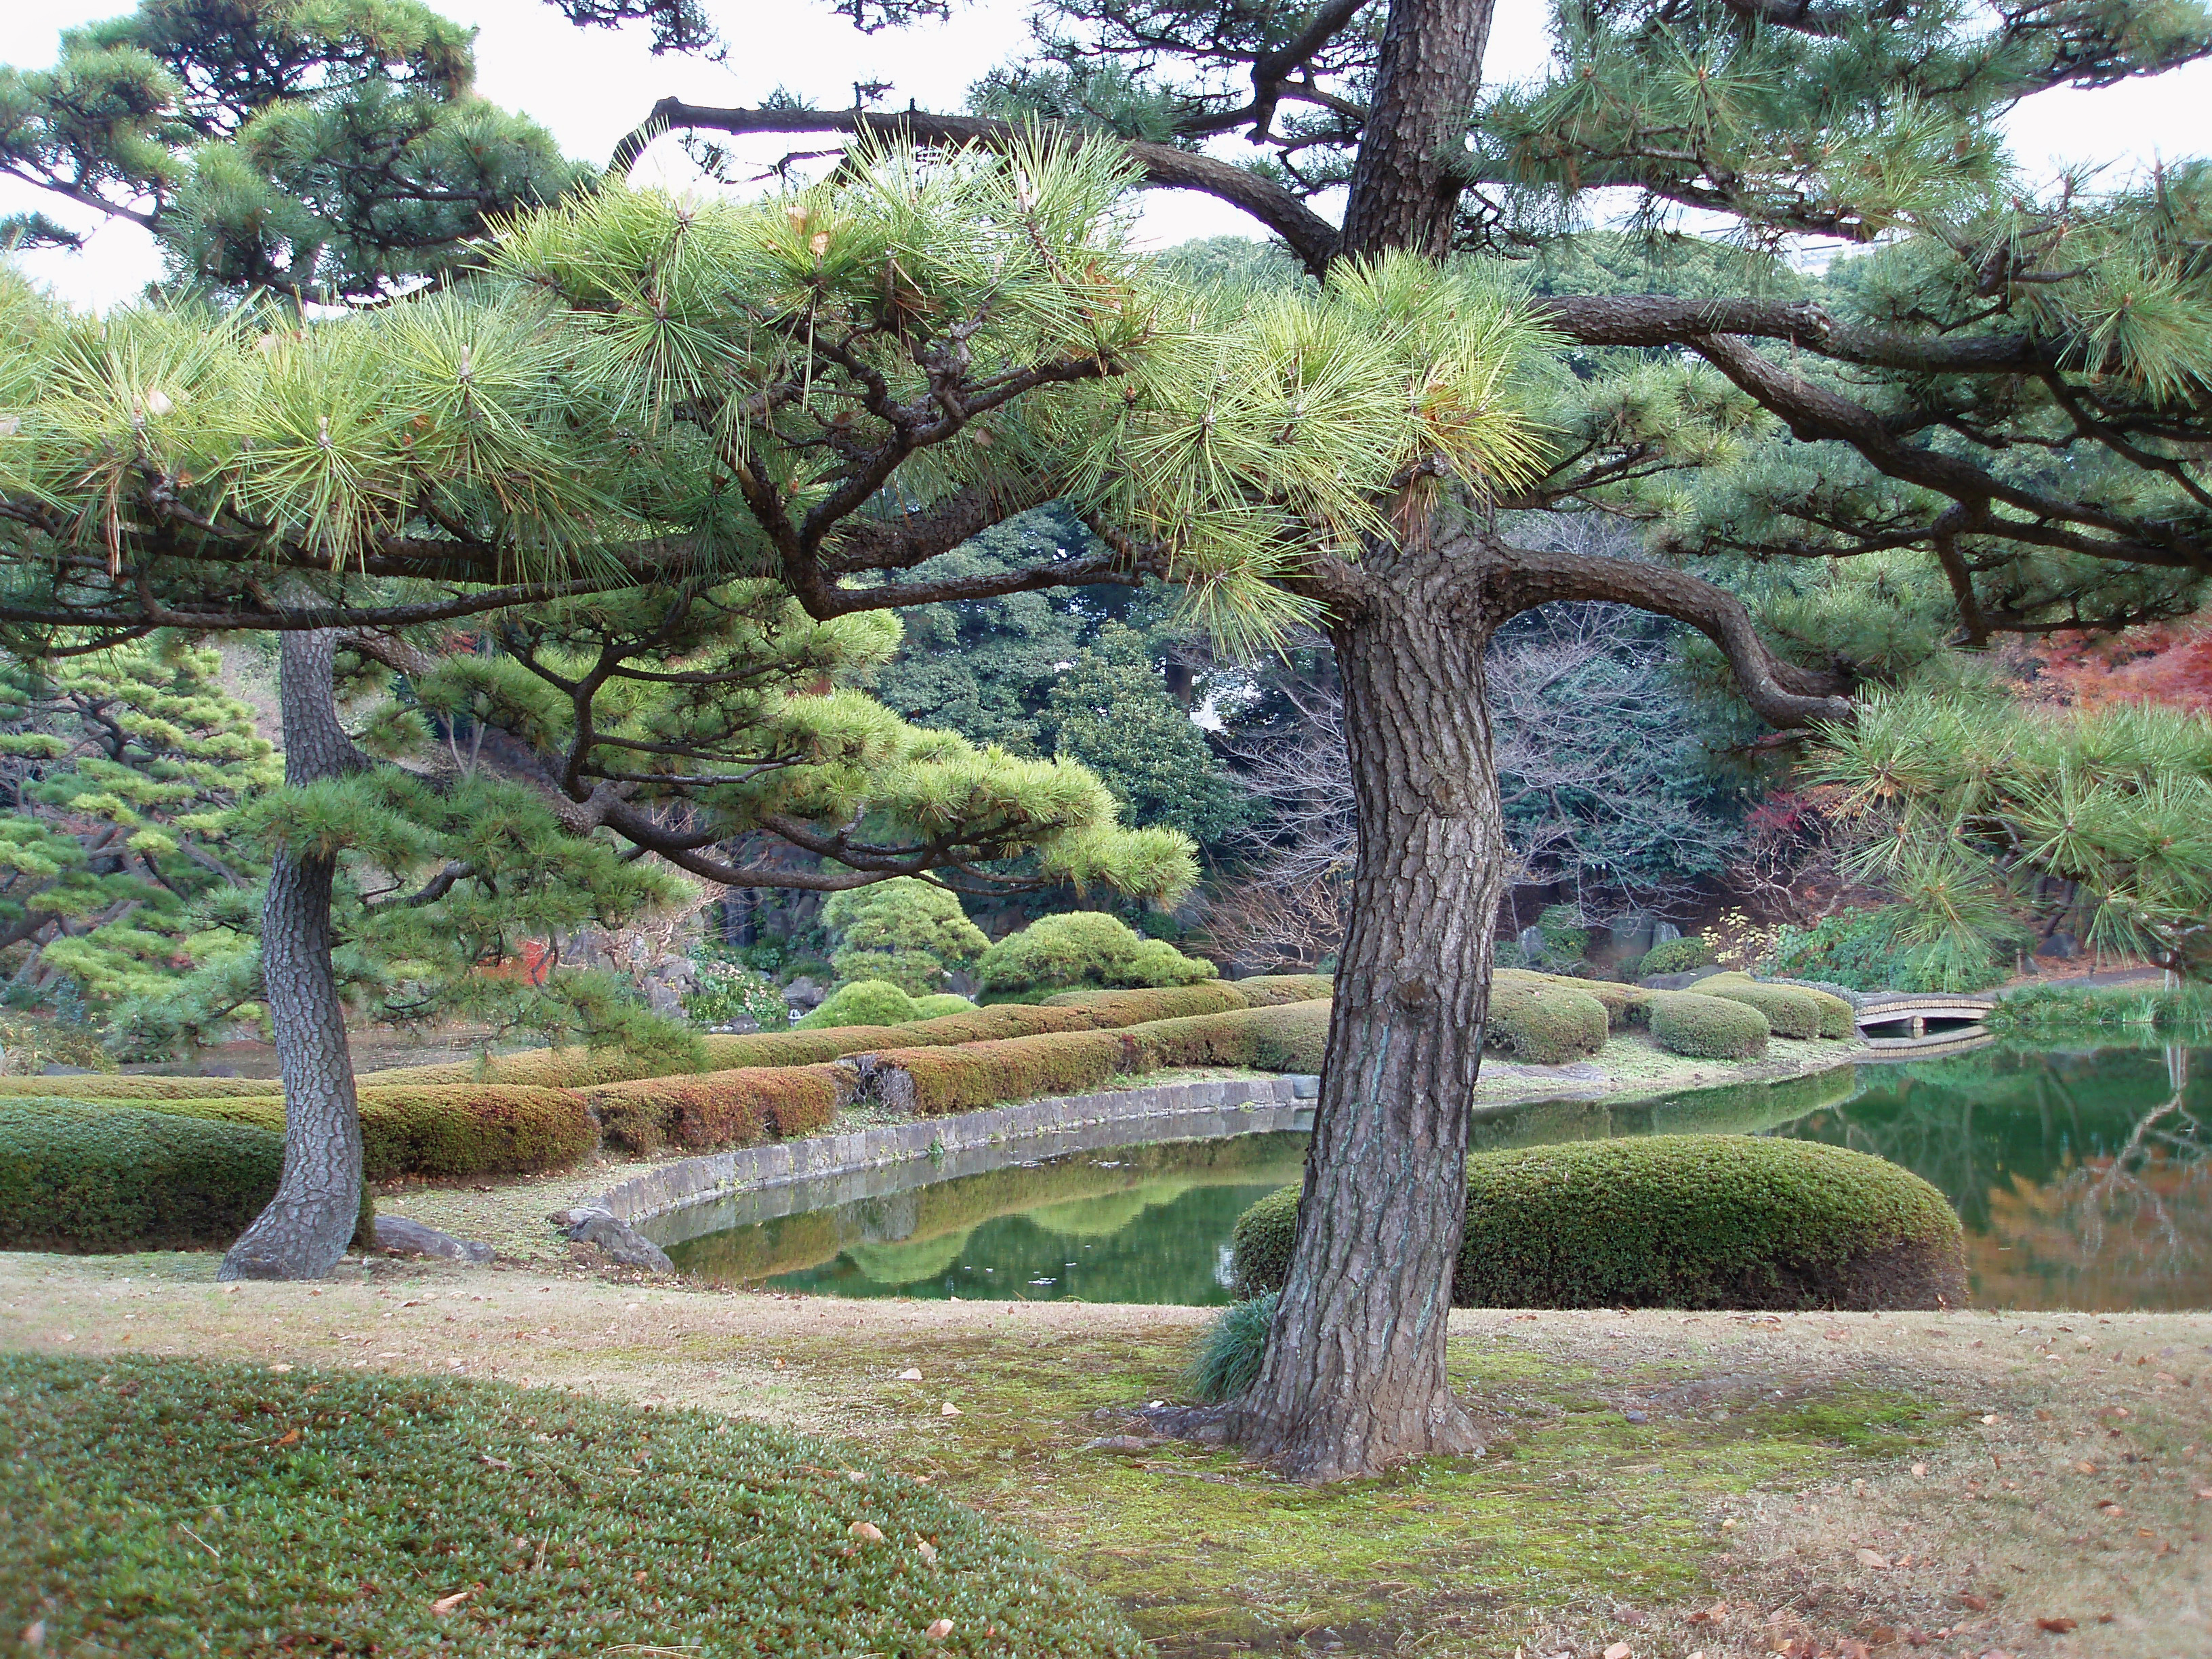 pine trees and decorative ornamental gardens in a tokyo park